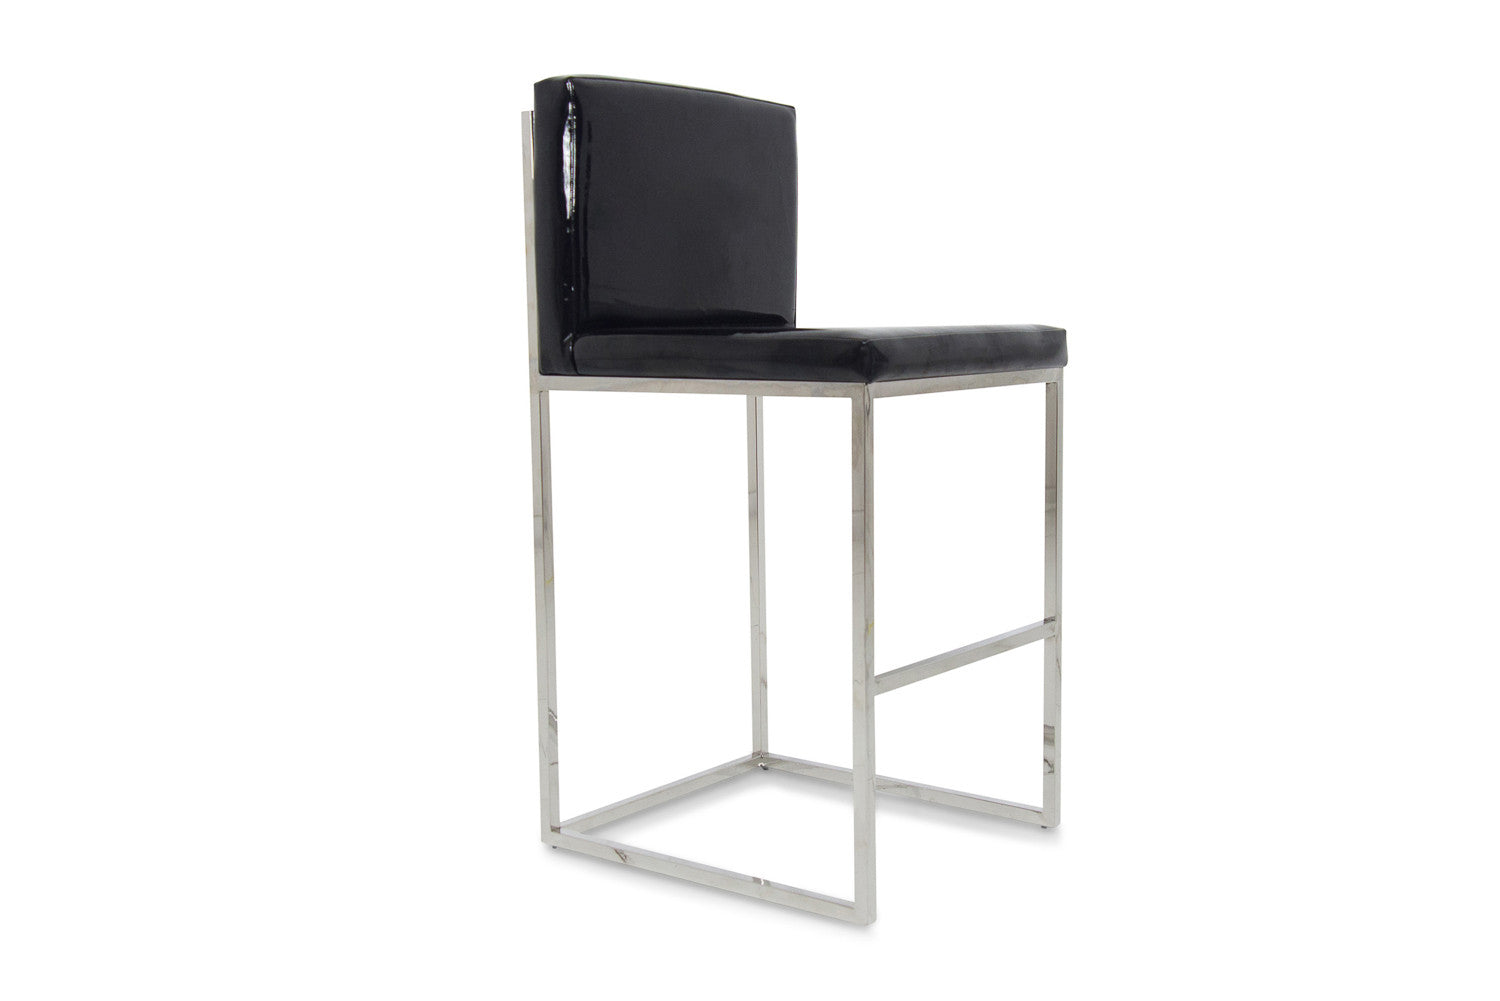 007 Bar Stool in Patent Leather  sc 1 st  ModShop & Modern bar stool in patent leather | Modshop - ModShop islam-shia.org